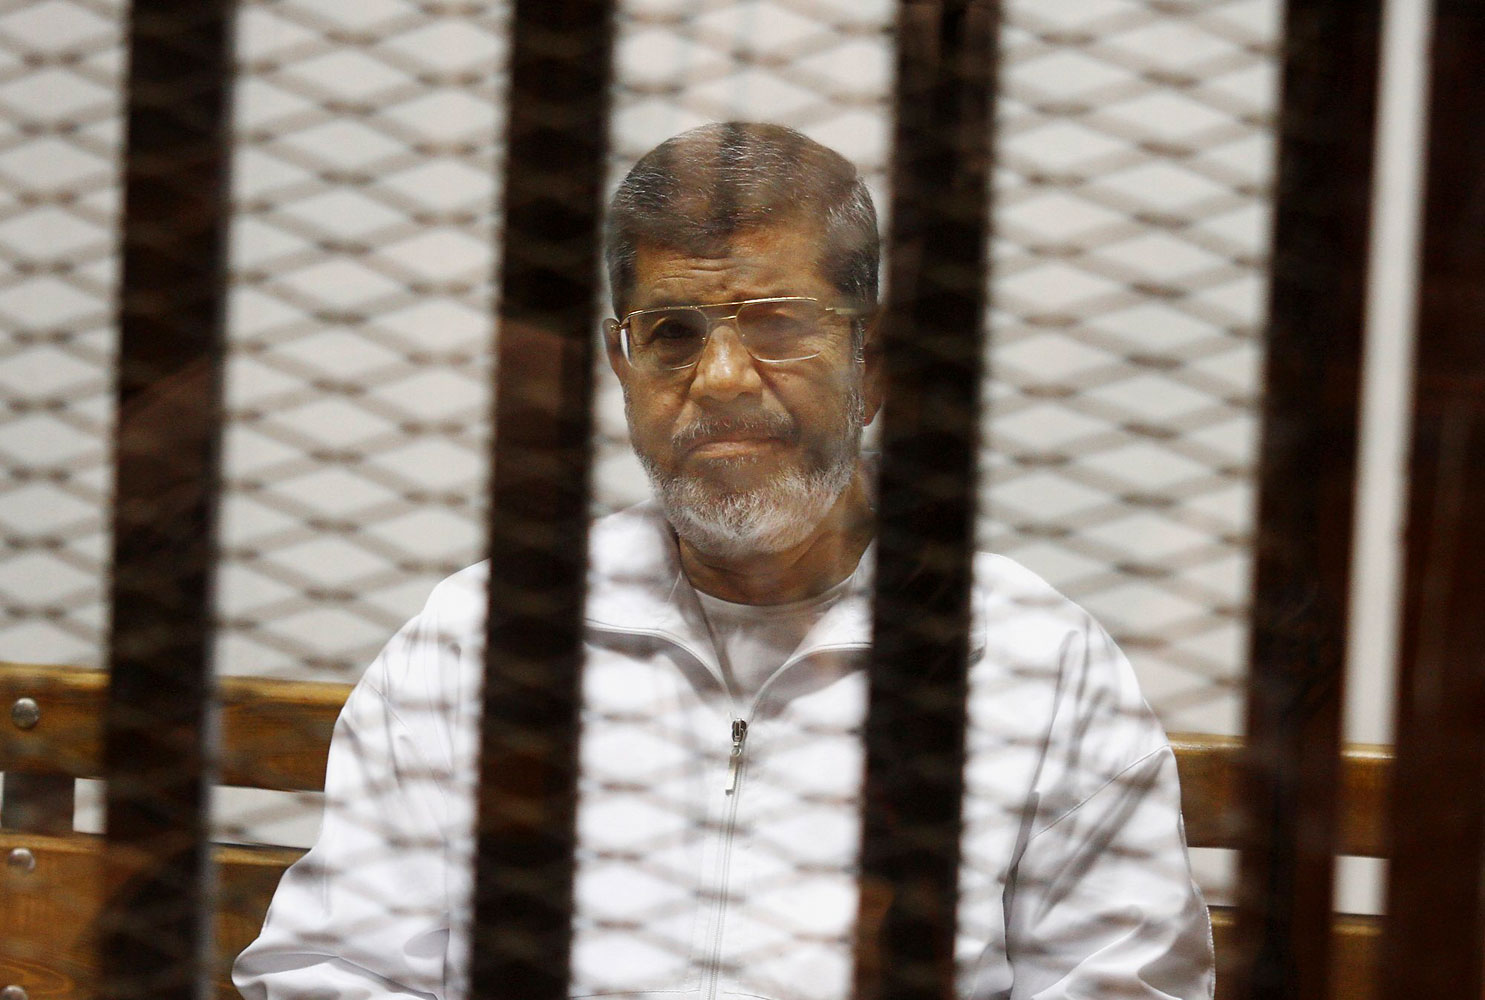 Egypt's ousted Islamist President Mohammed Morsi sits in a defendant cage in the Police Academy courthouse in Cairo, May 8, 2014.